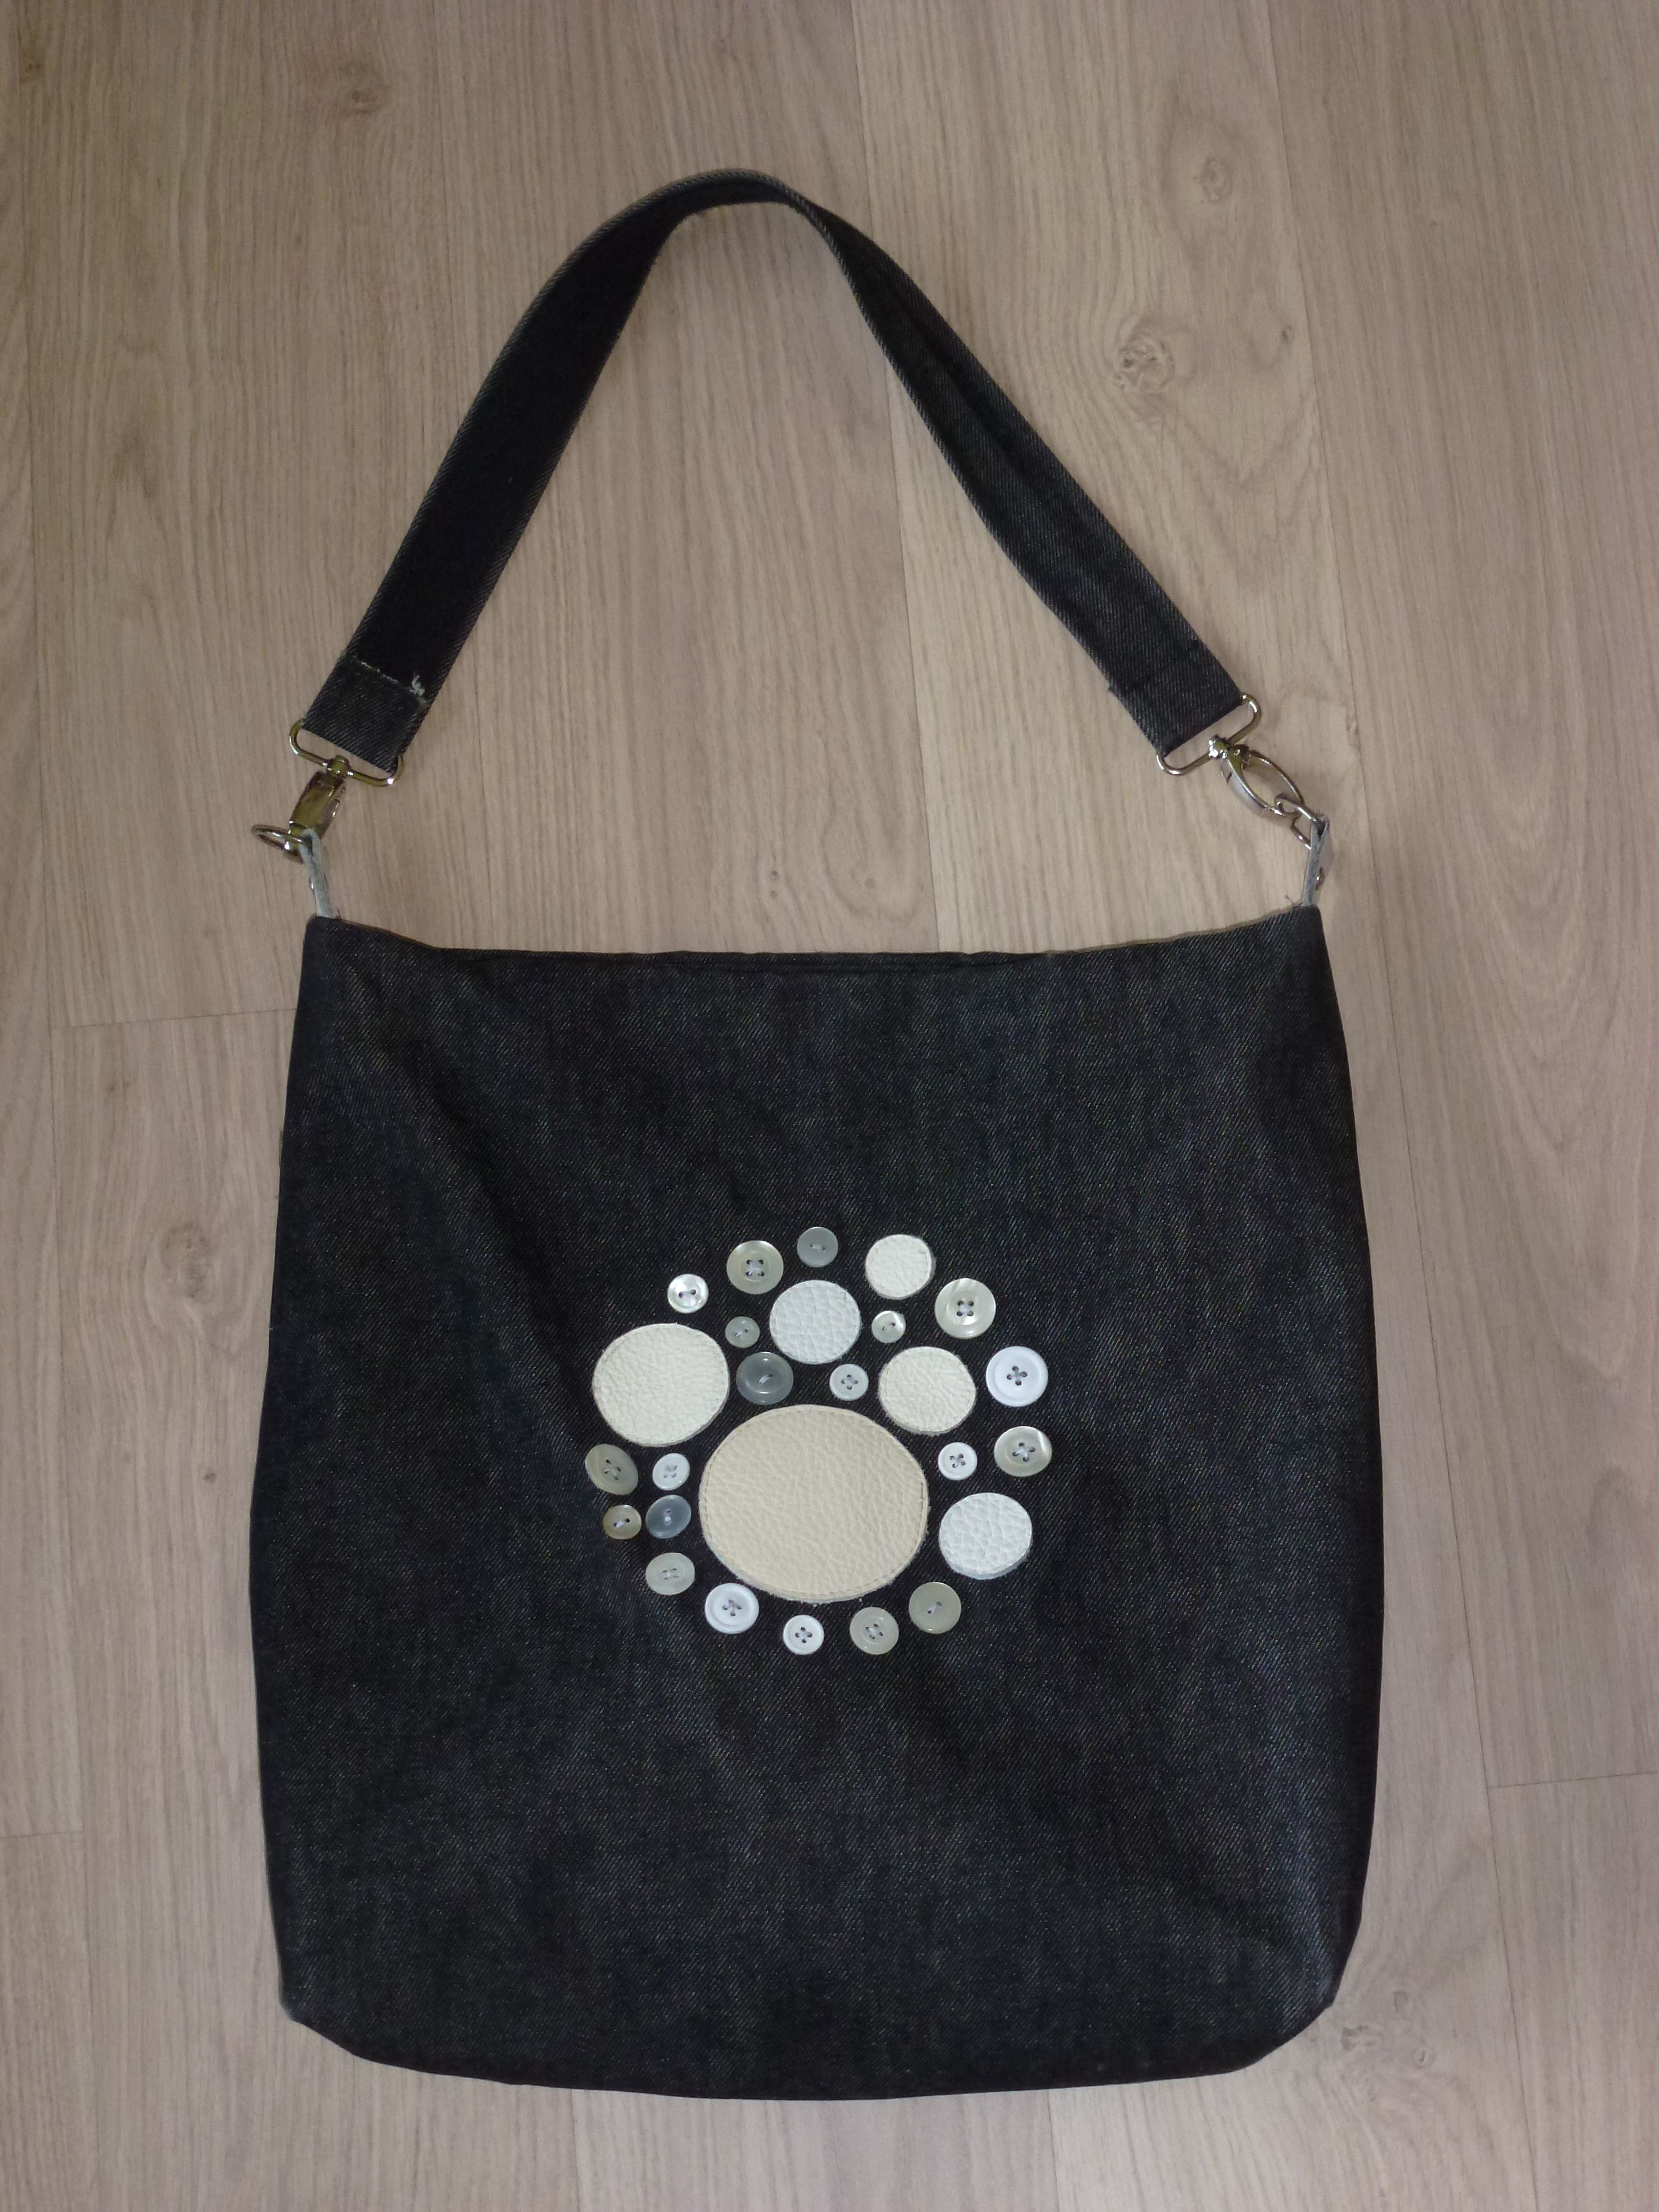 One Of My Favorite Self Made Bags Re Use Various Ons And Leather